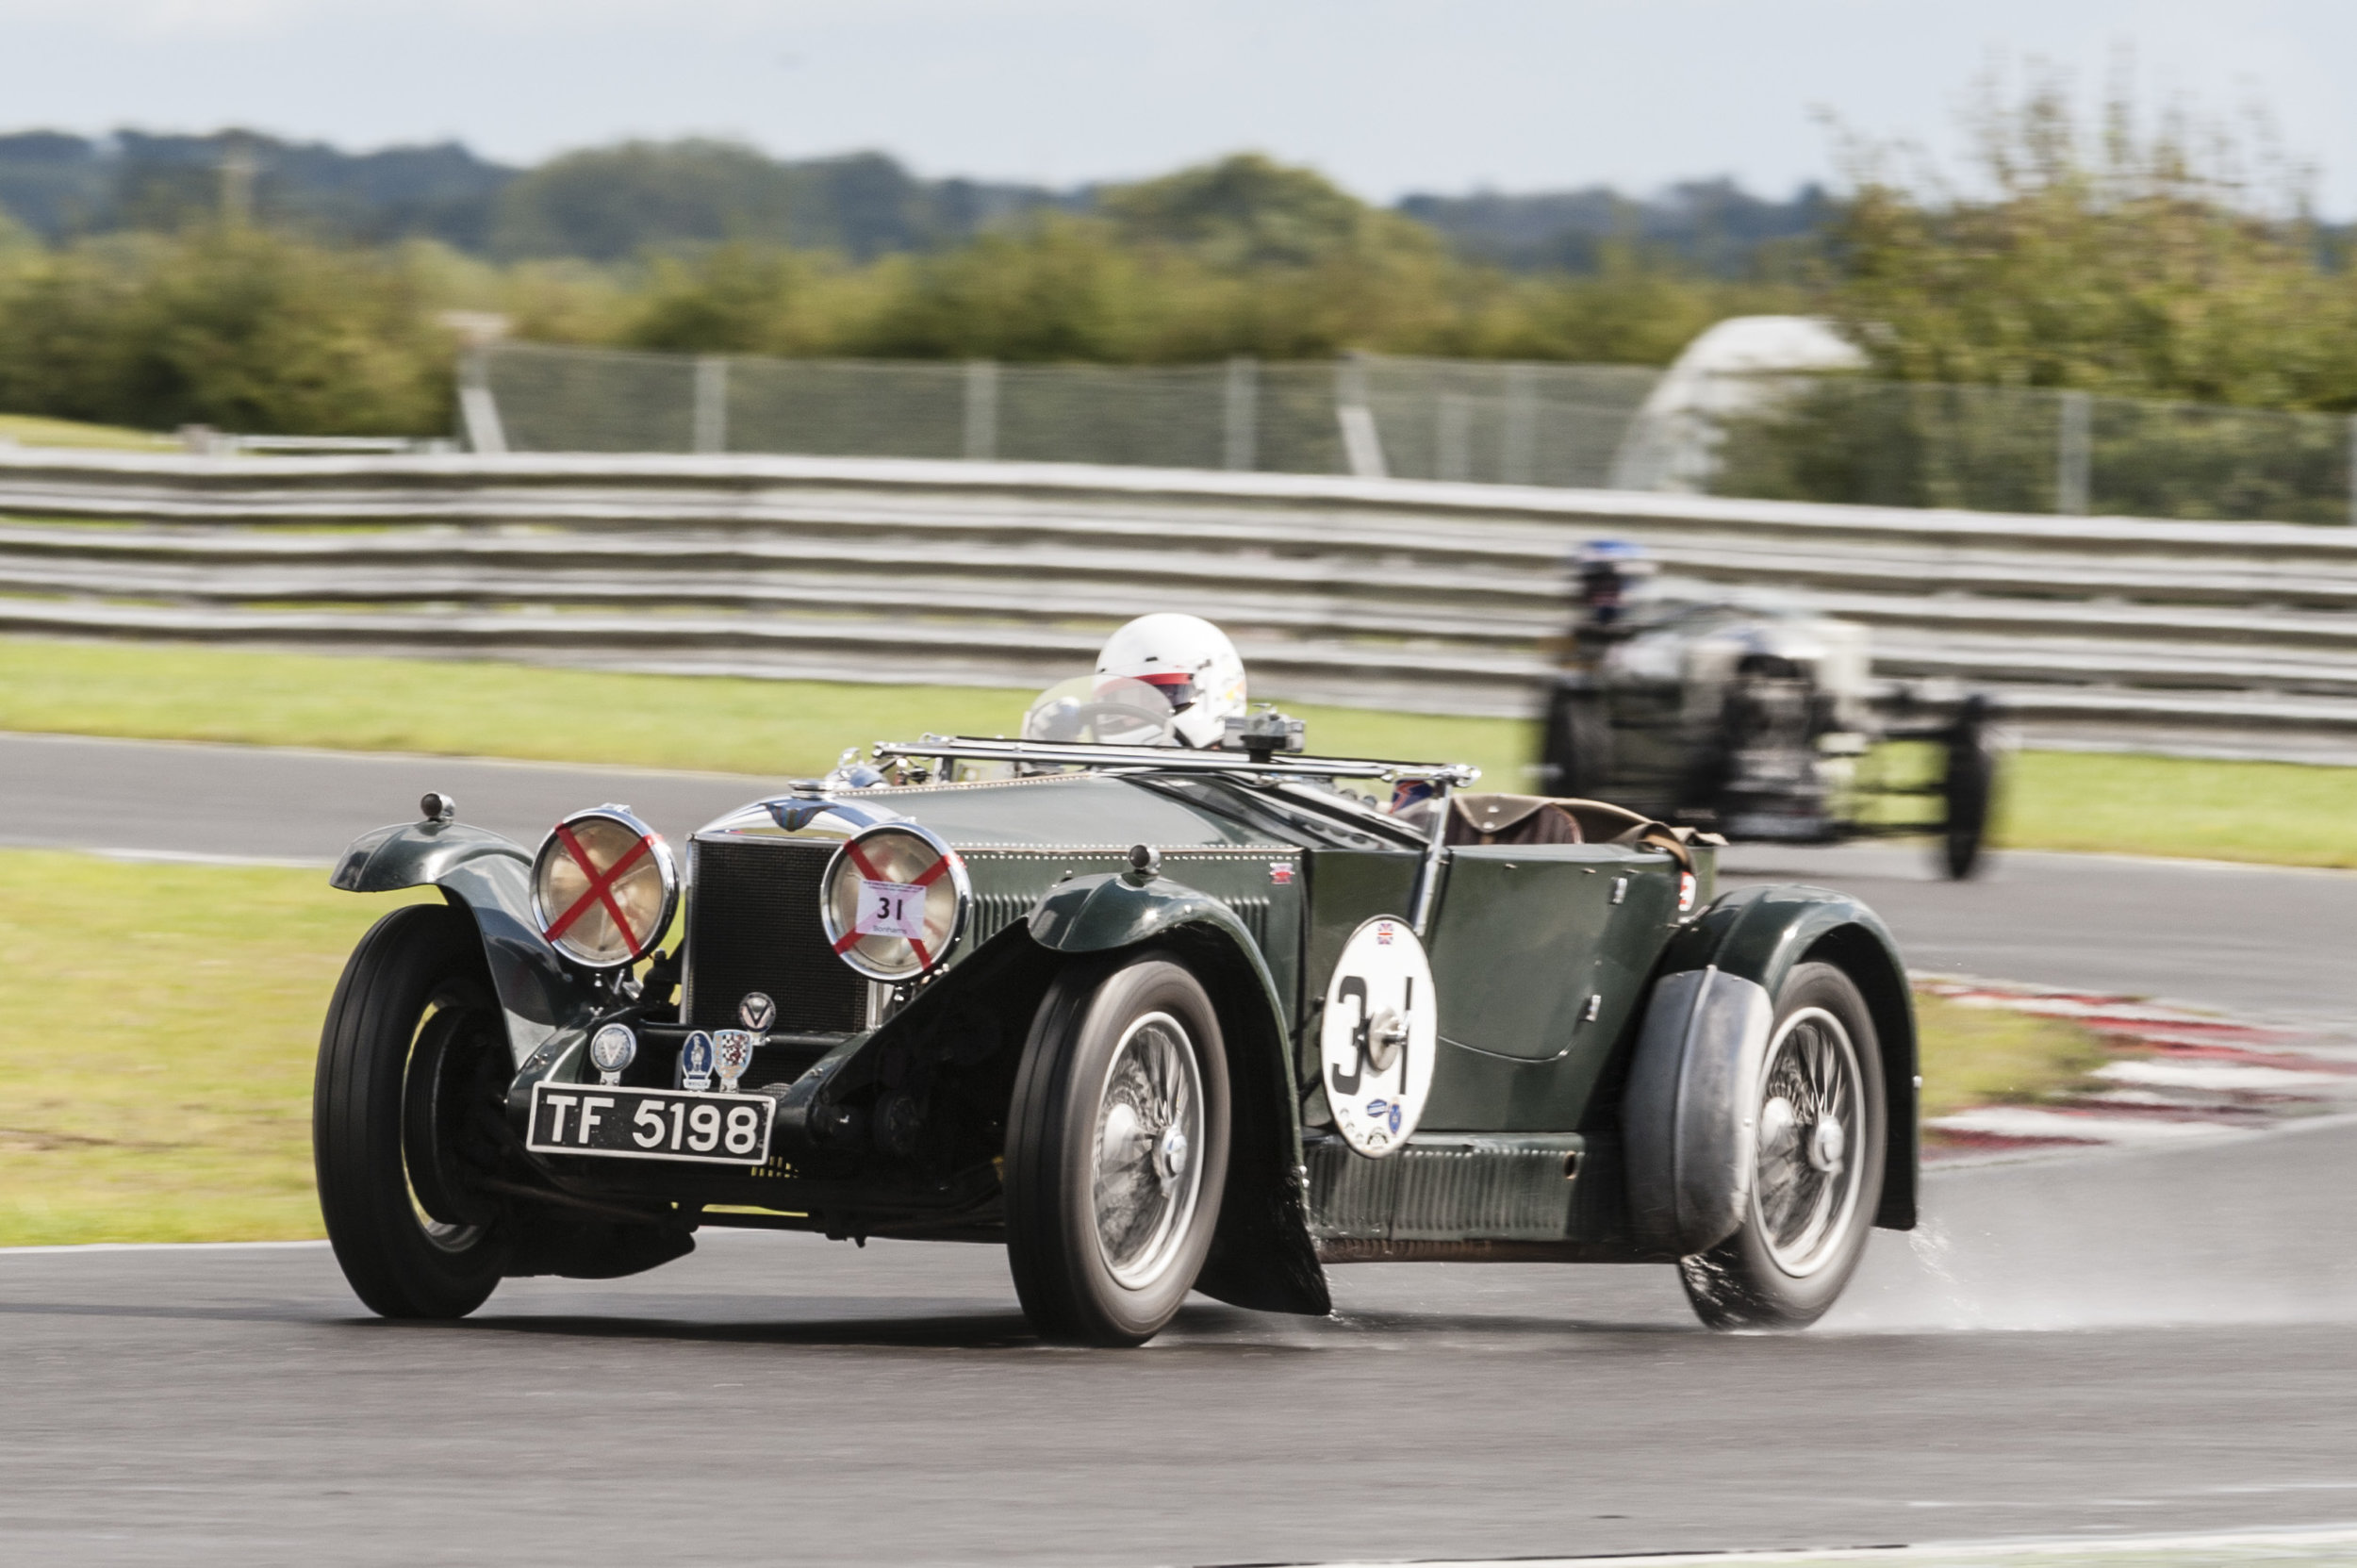 Swete in the S-Type Invicta who finished in 5th place:  Peter McFadyen